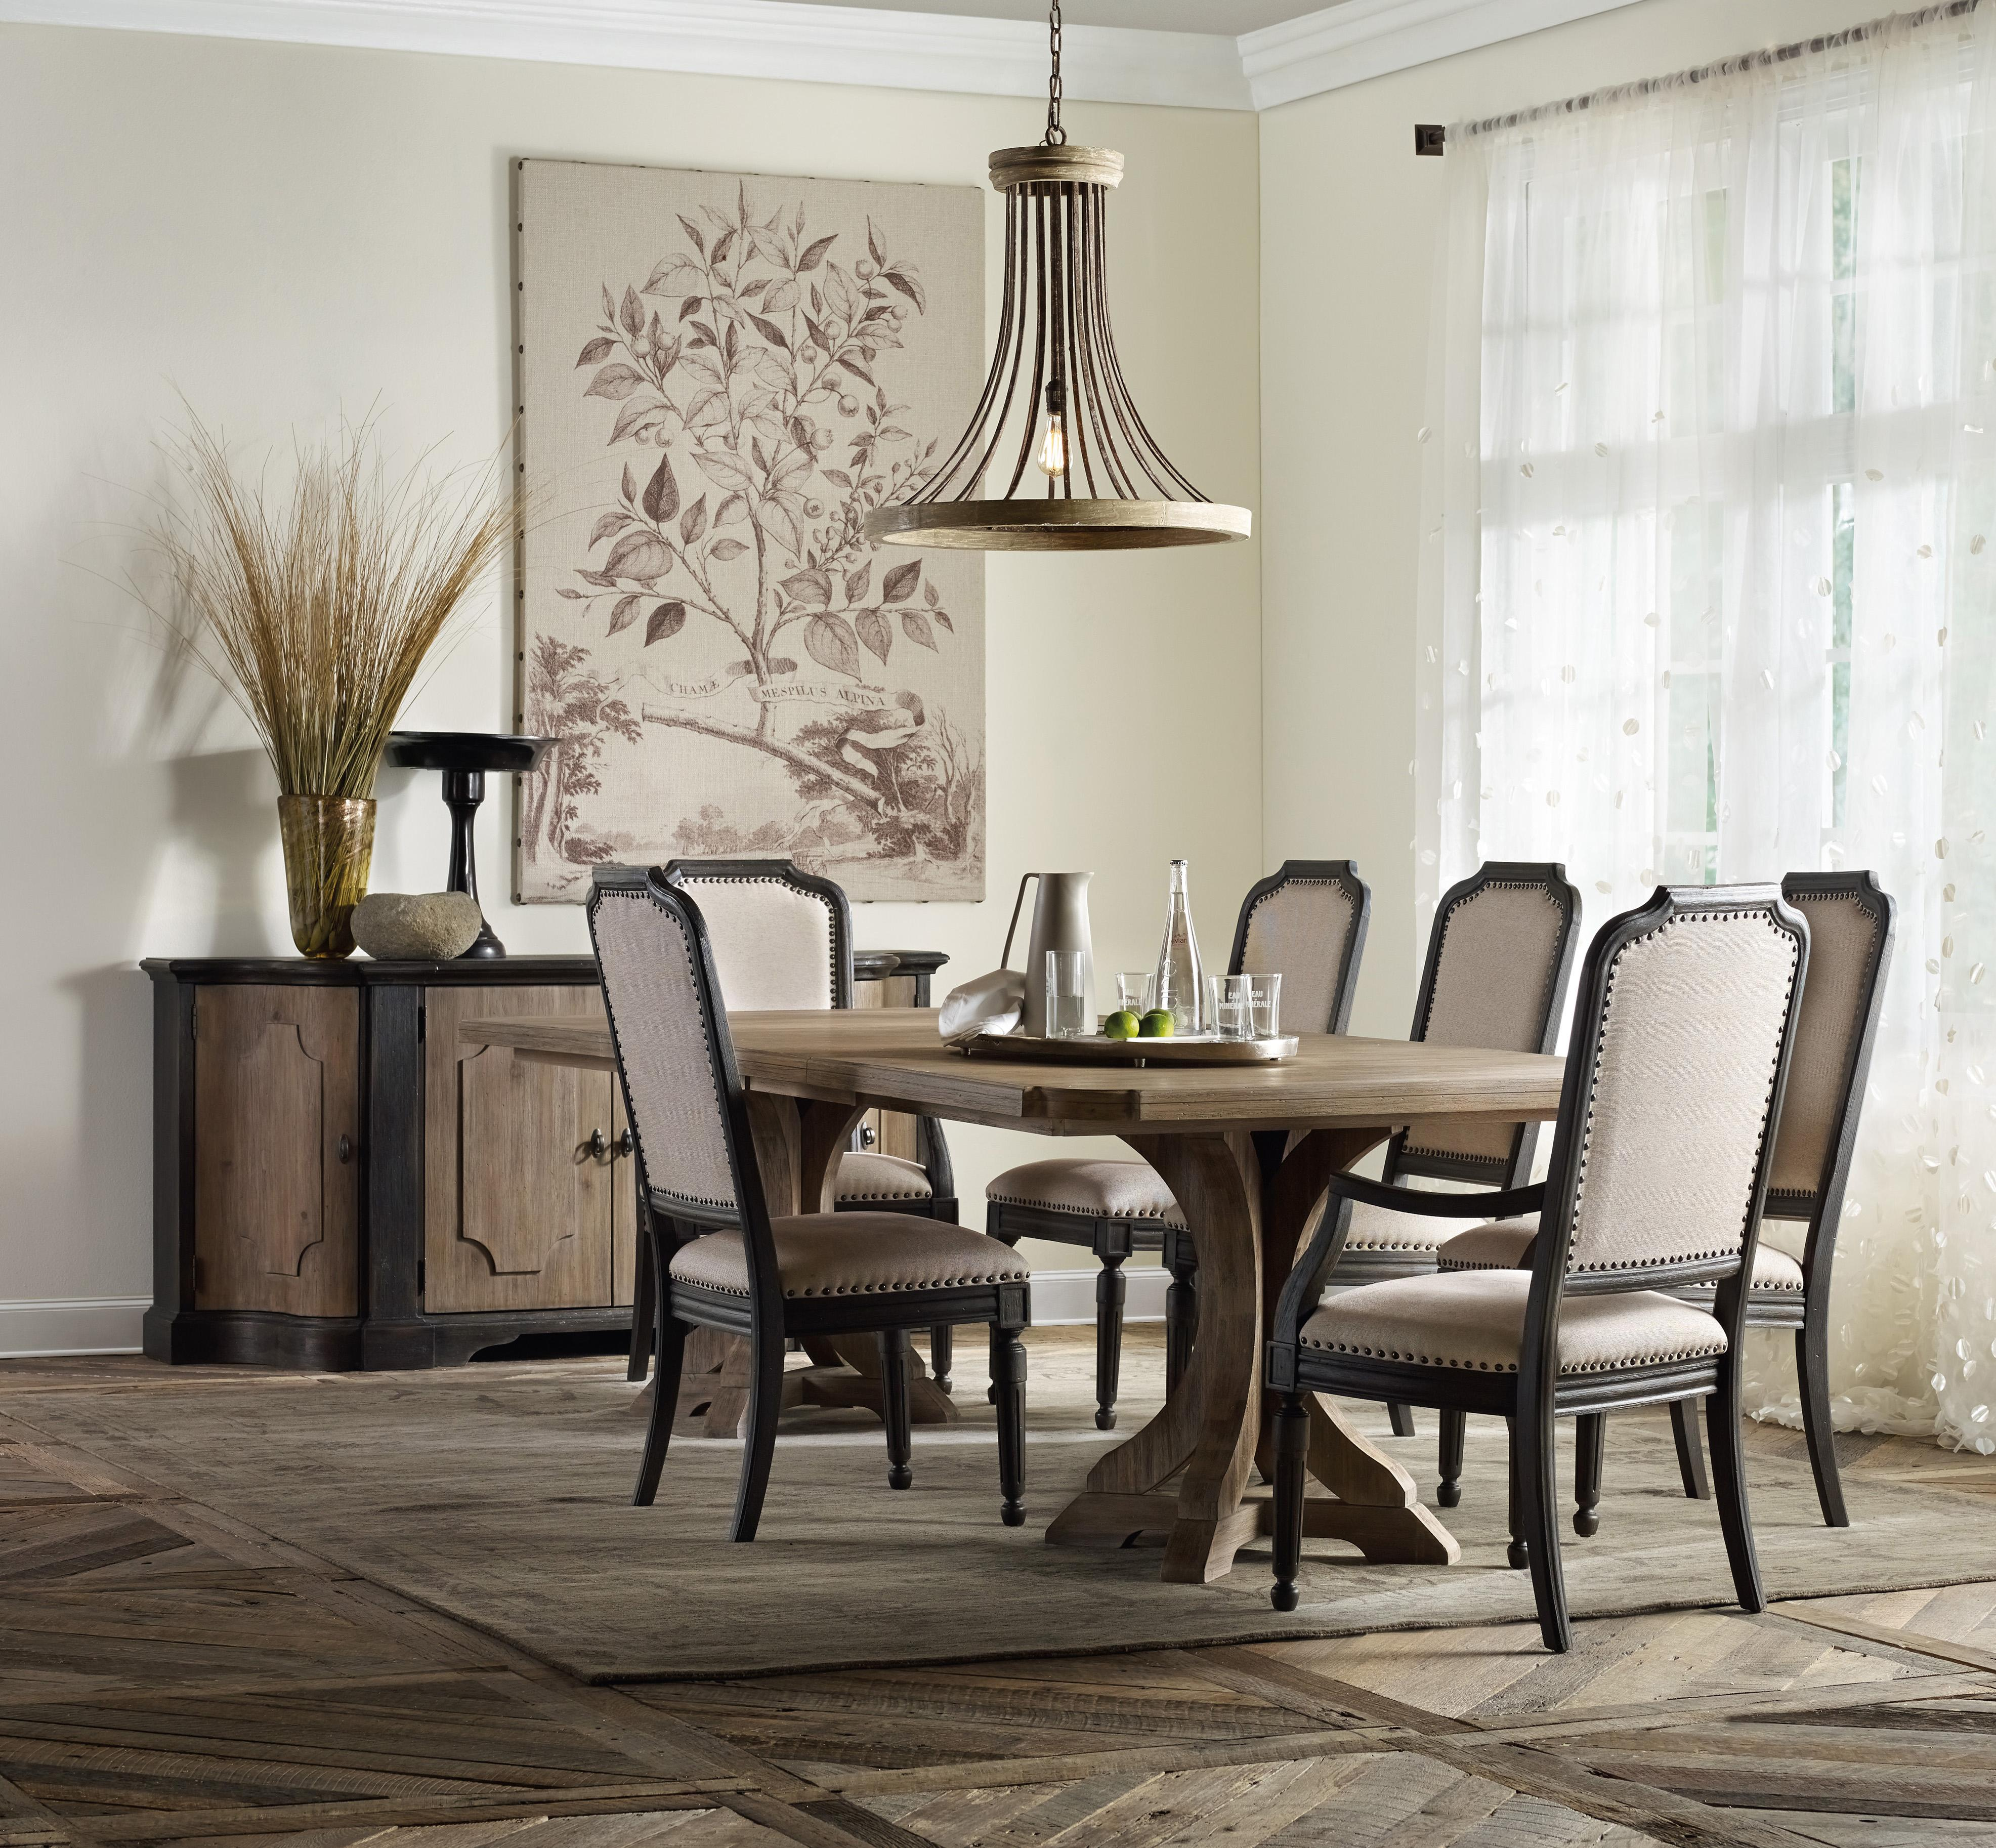 Hooker Furniture Corsica Rectangle Pedestal Dining Table With 2 20 Inch Leaves Jacksonville